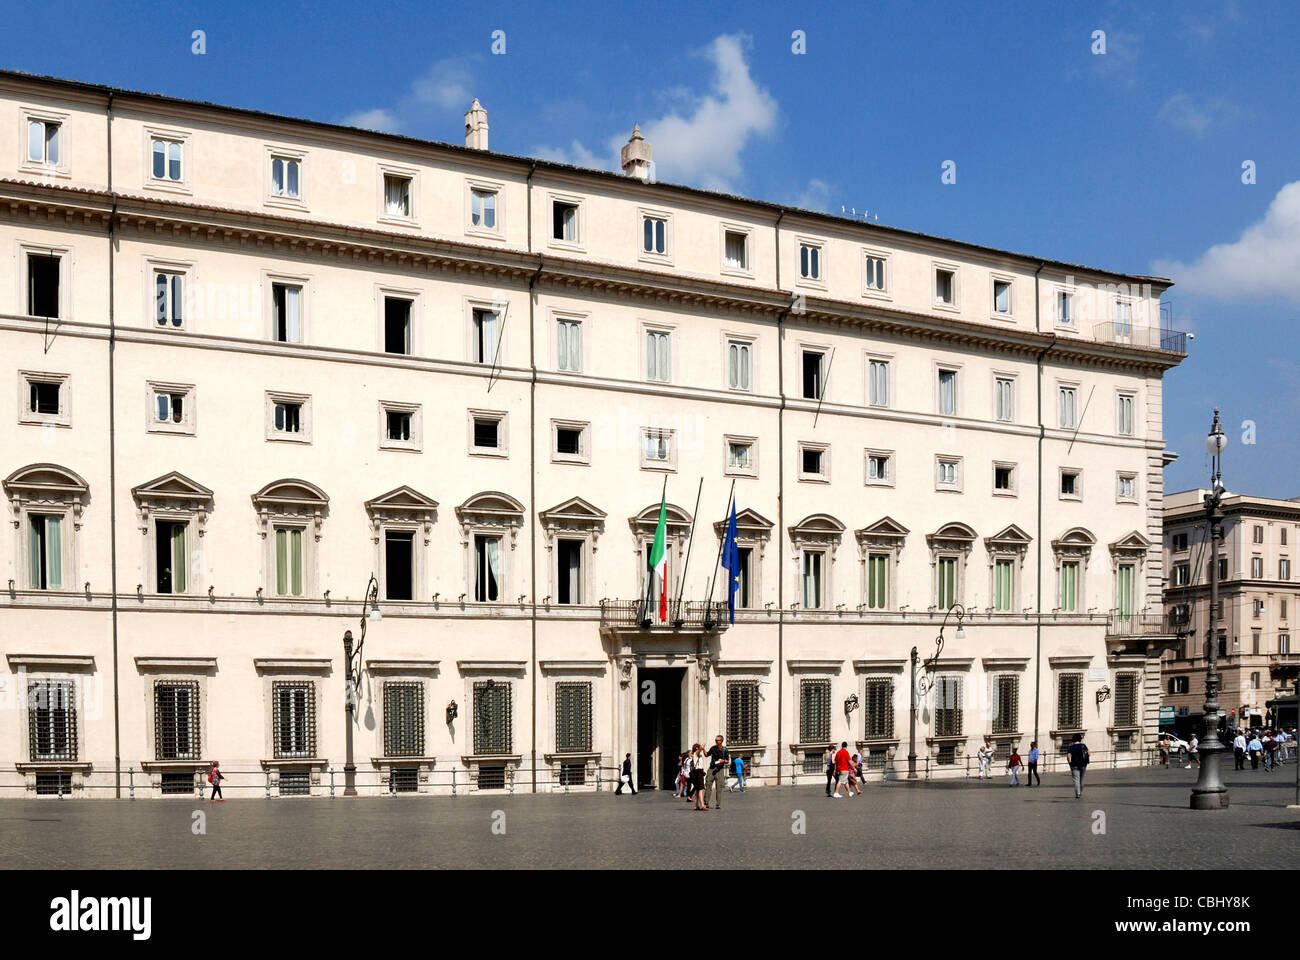 Palazzo Chigi in Rome - Residence of the Italian Prime Minister. - Stock Image